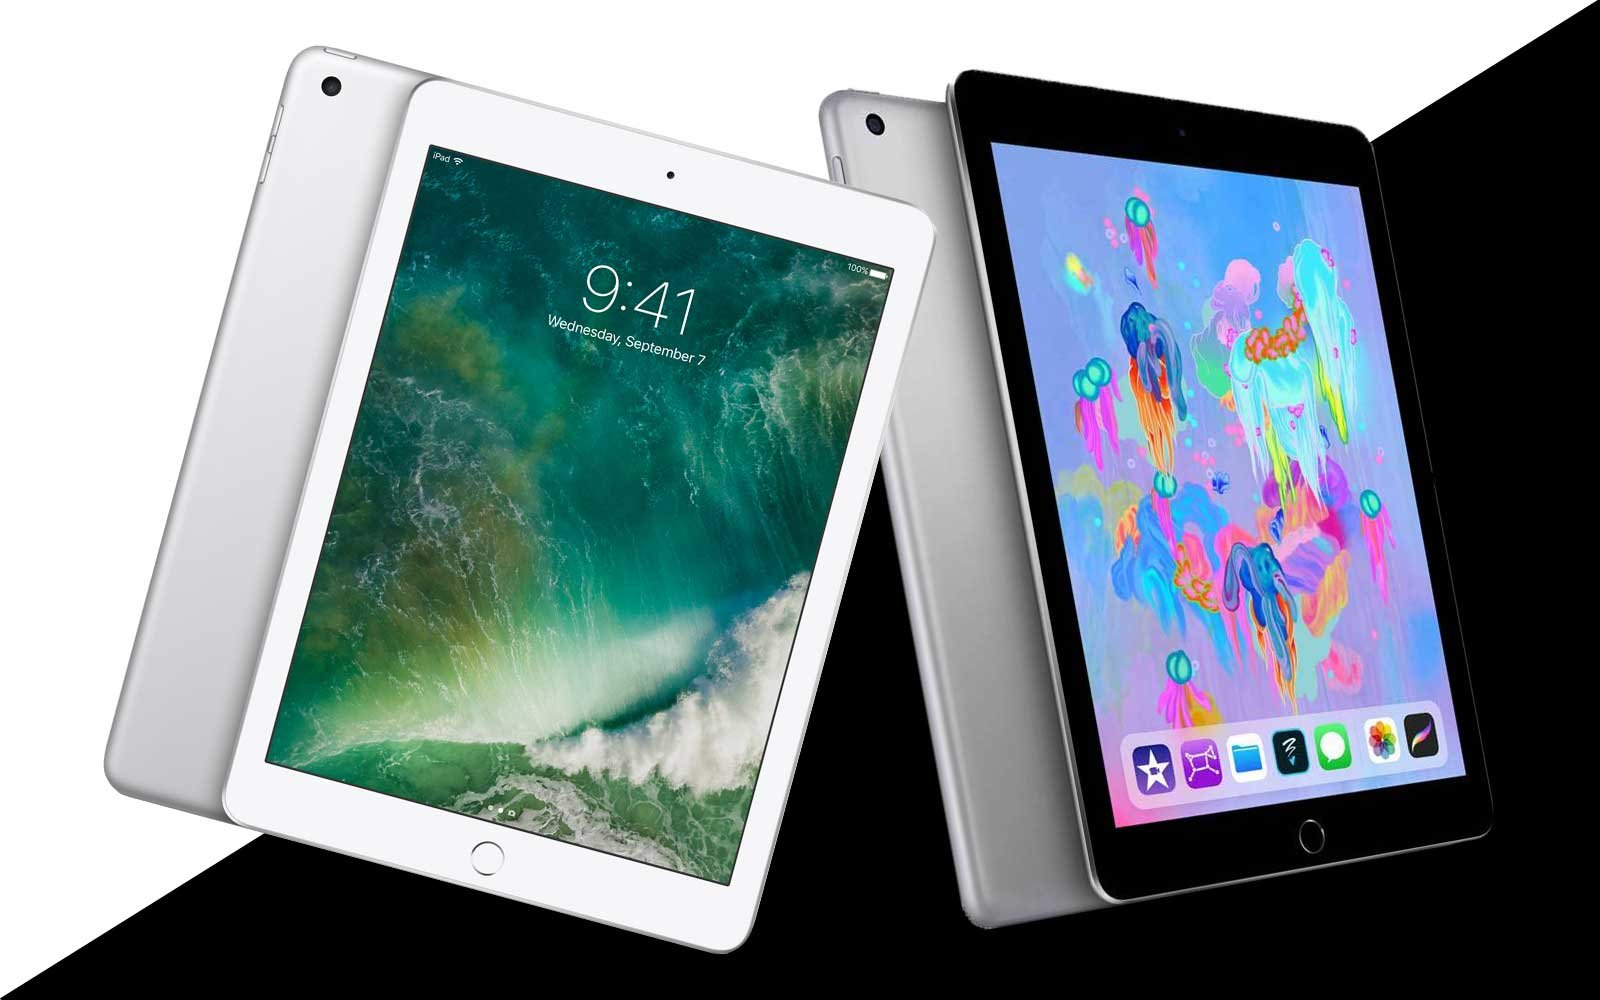 The Newest iPad Is $80 Off at Walmart — and Selling Fast